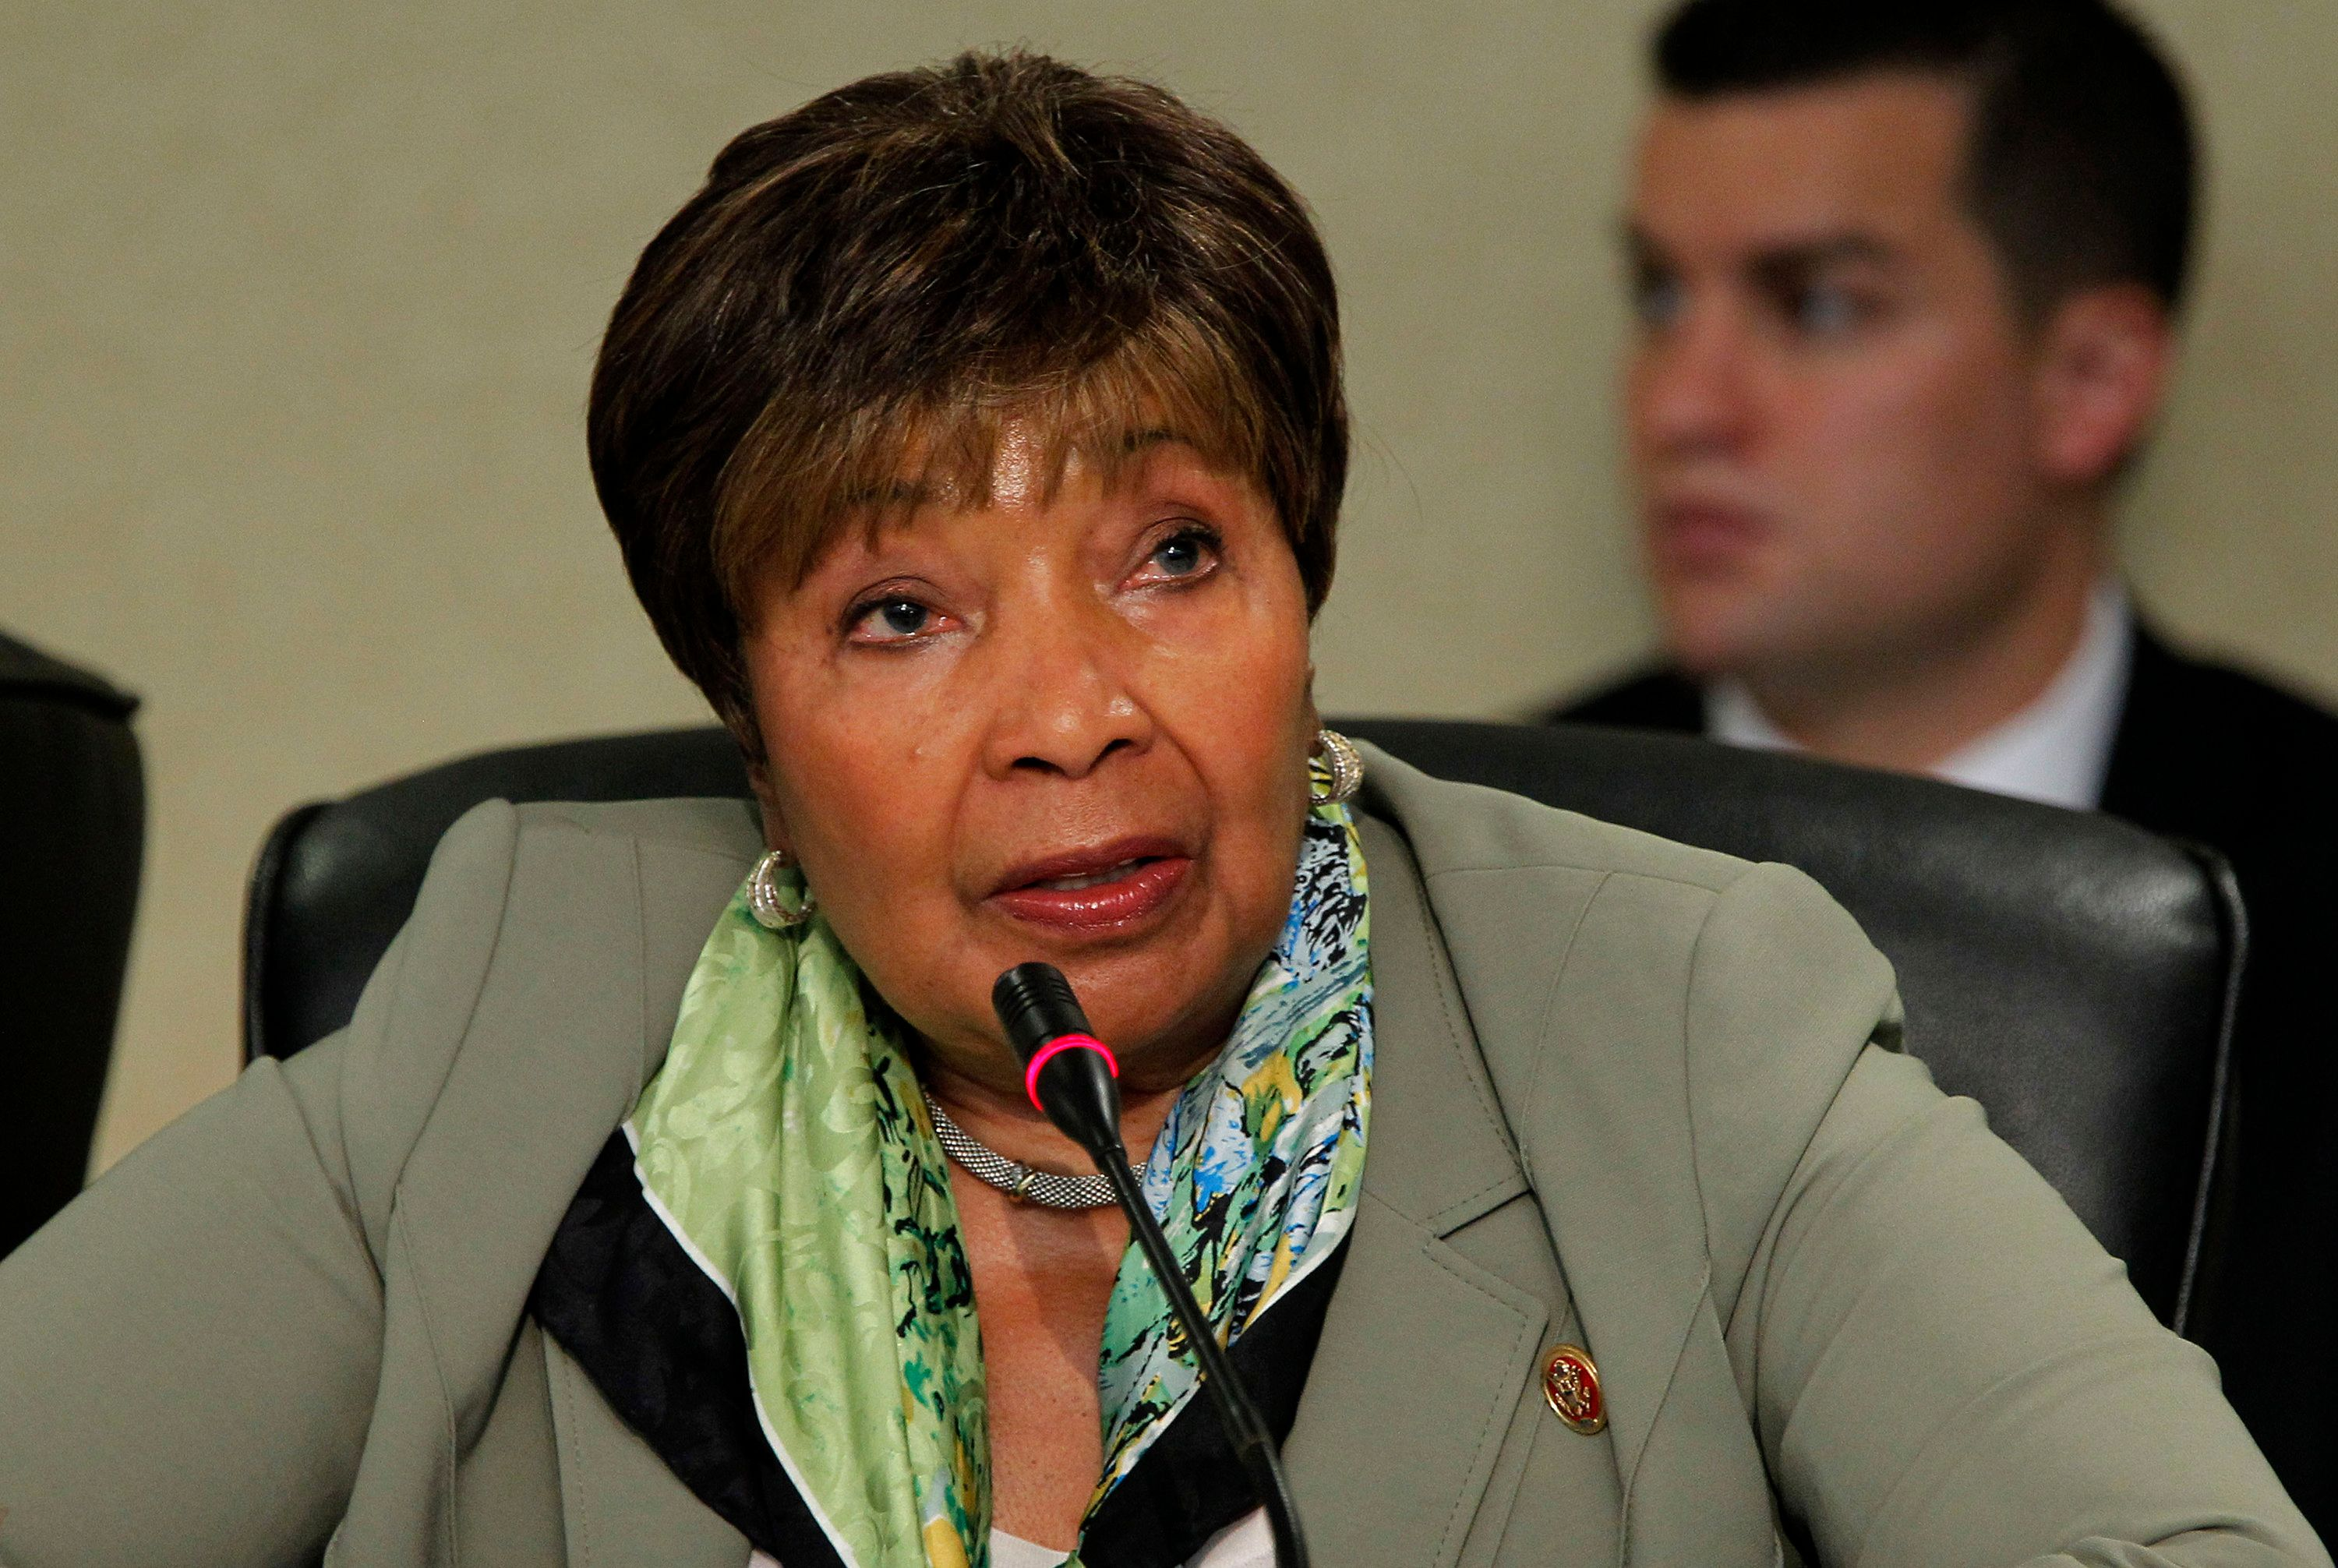 Rep. Eddie Bernice Johnson (D-Texas) asks questions  at a hearing of the House Committee on Homeland Security at Dallas/Fort Worth International Airport to look at the federal, state and local response to the Ebola case in Dallas on Friday, Oct. 10, 2014. (Rodger Mallison/Fort Worth Star-Telegram/MCT via Getty Images)